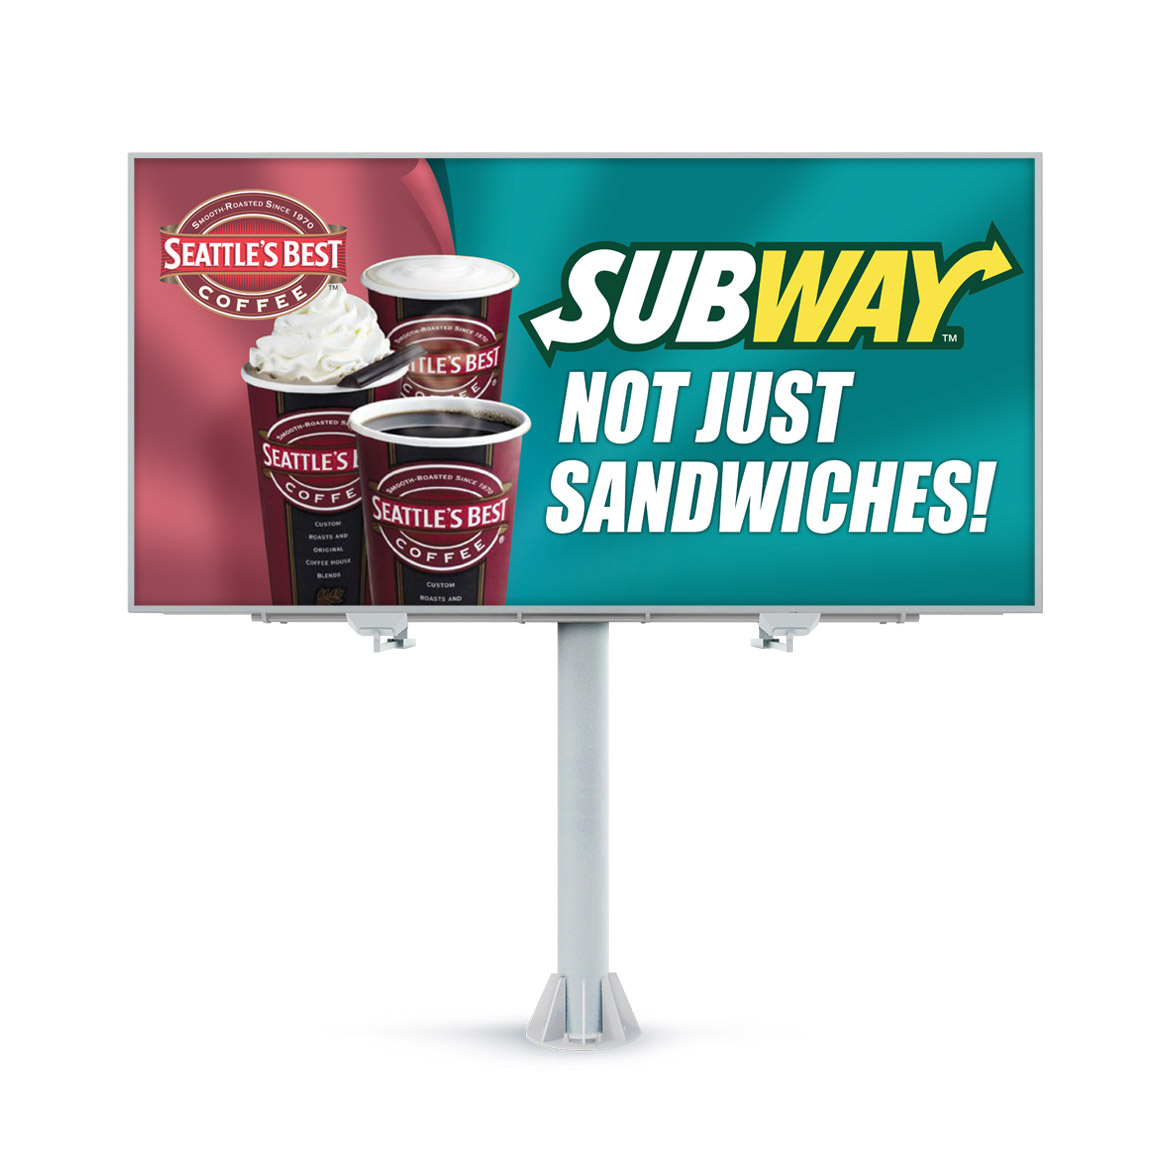 Billboard-Design-Subway-Not-Just-Sandwiches